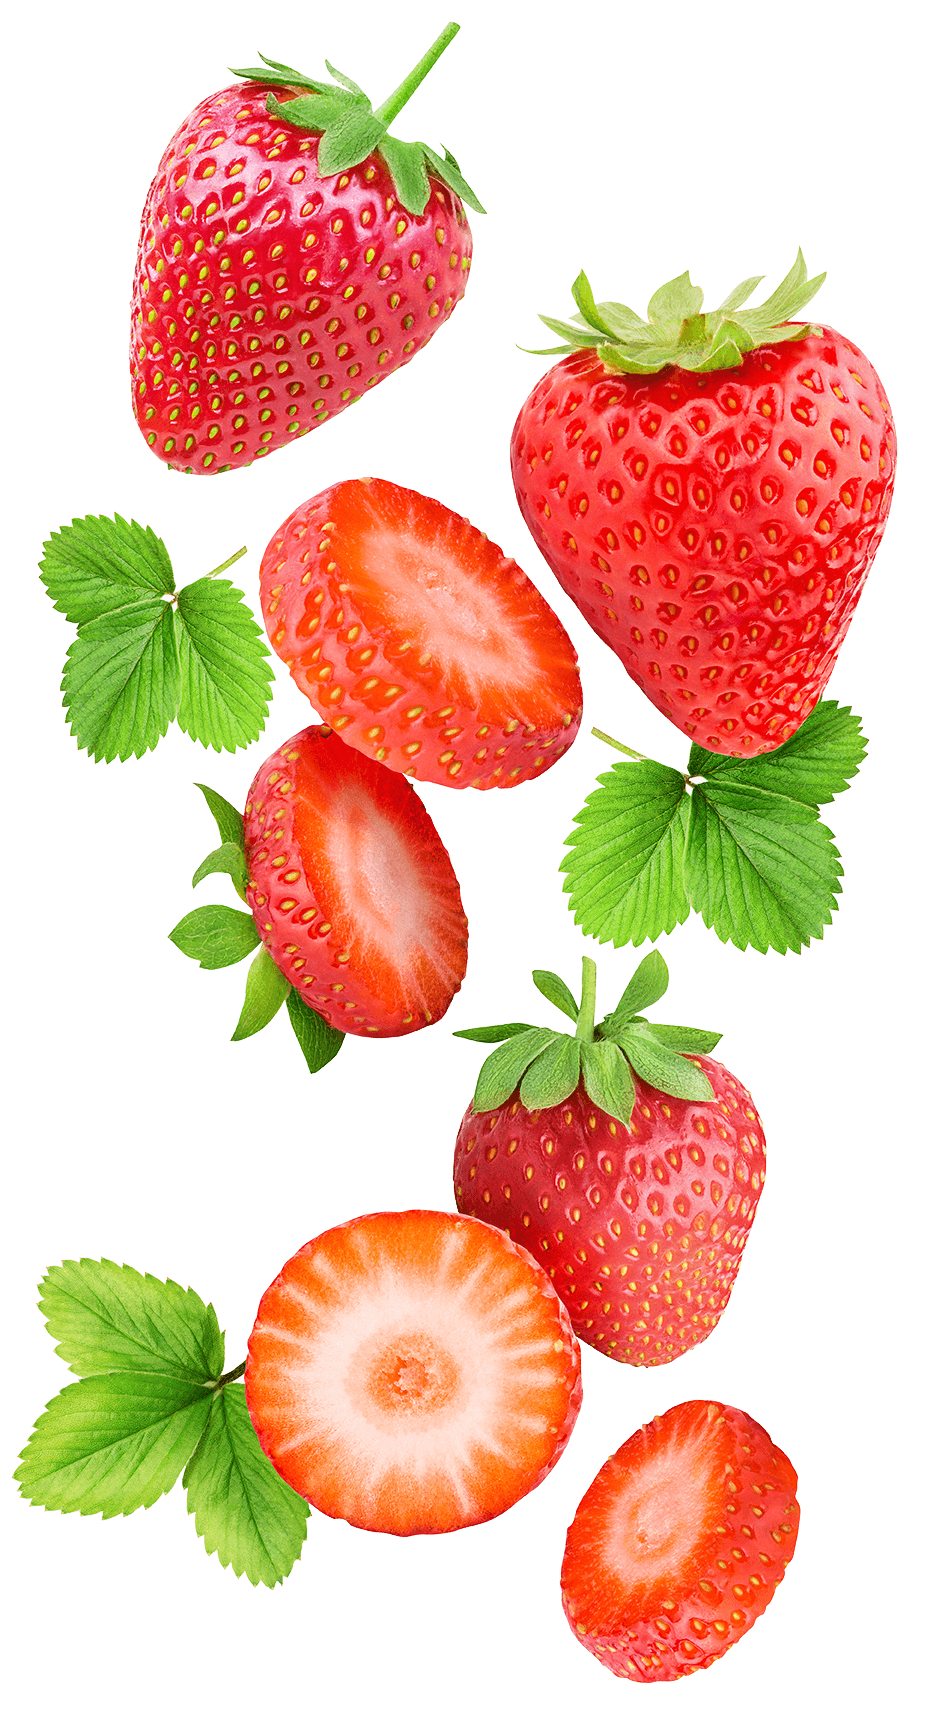 Flying strawberries